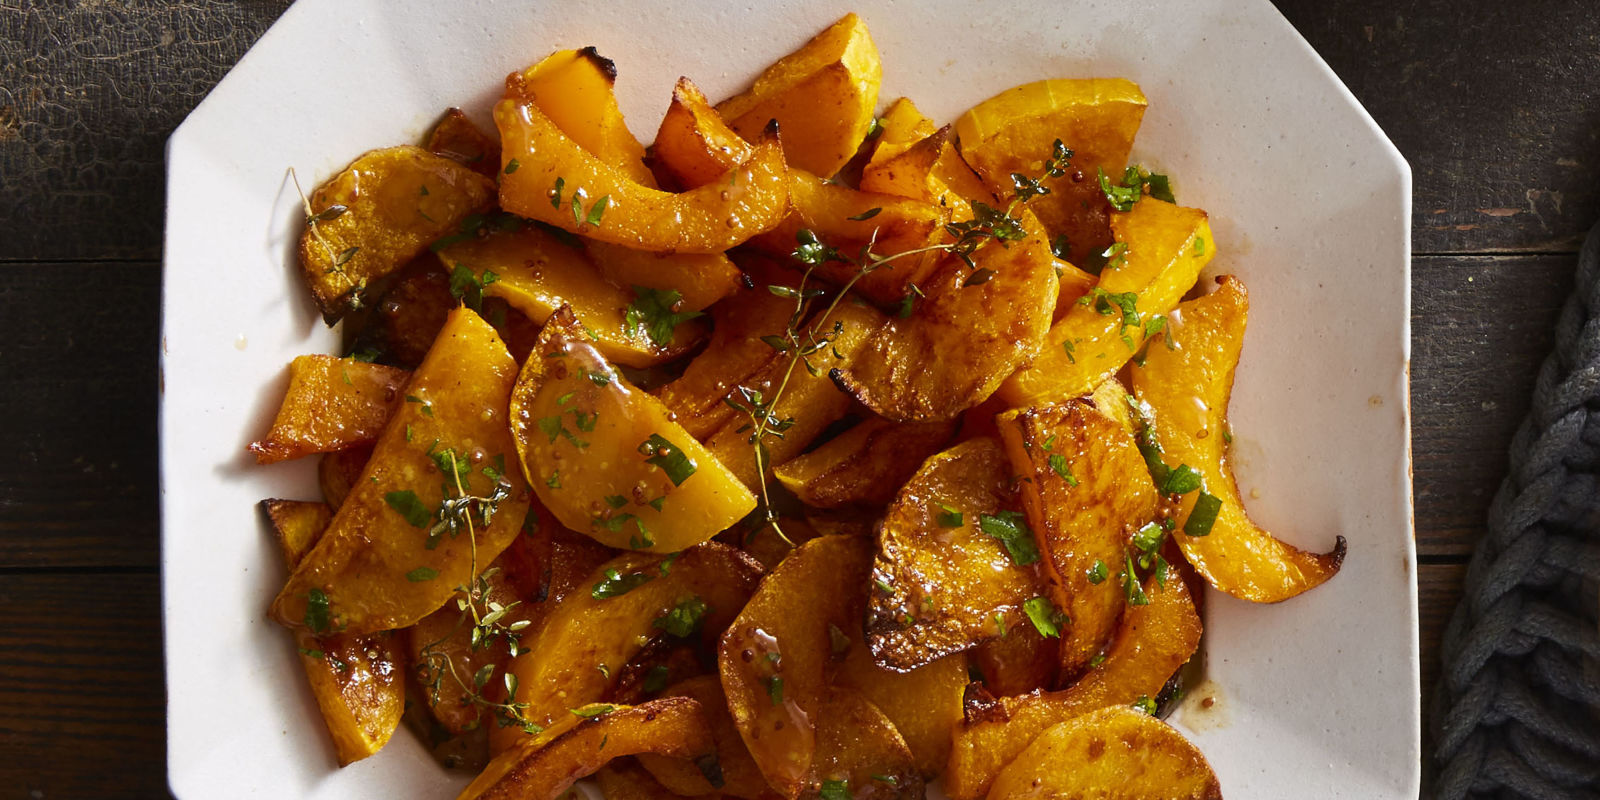 How To Make Spice-Roasted Butternut Squash with Cider Vinaigrette ...